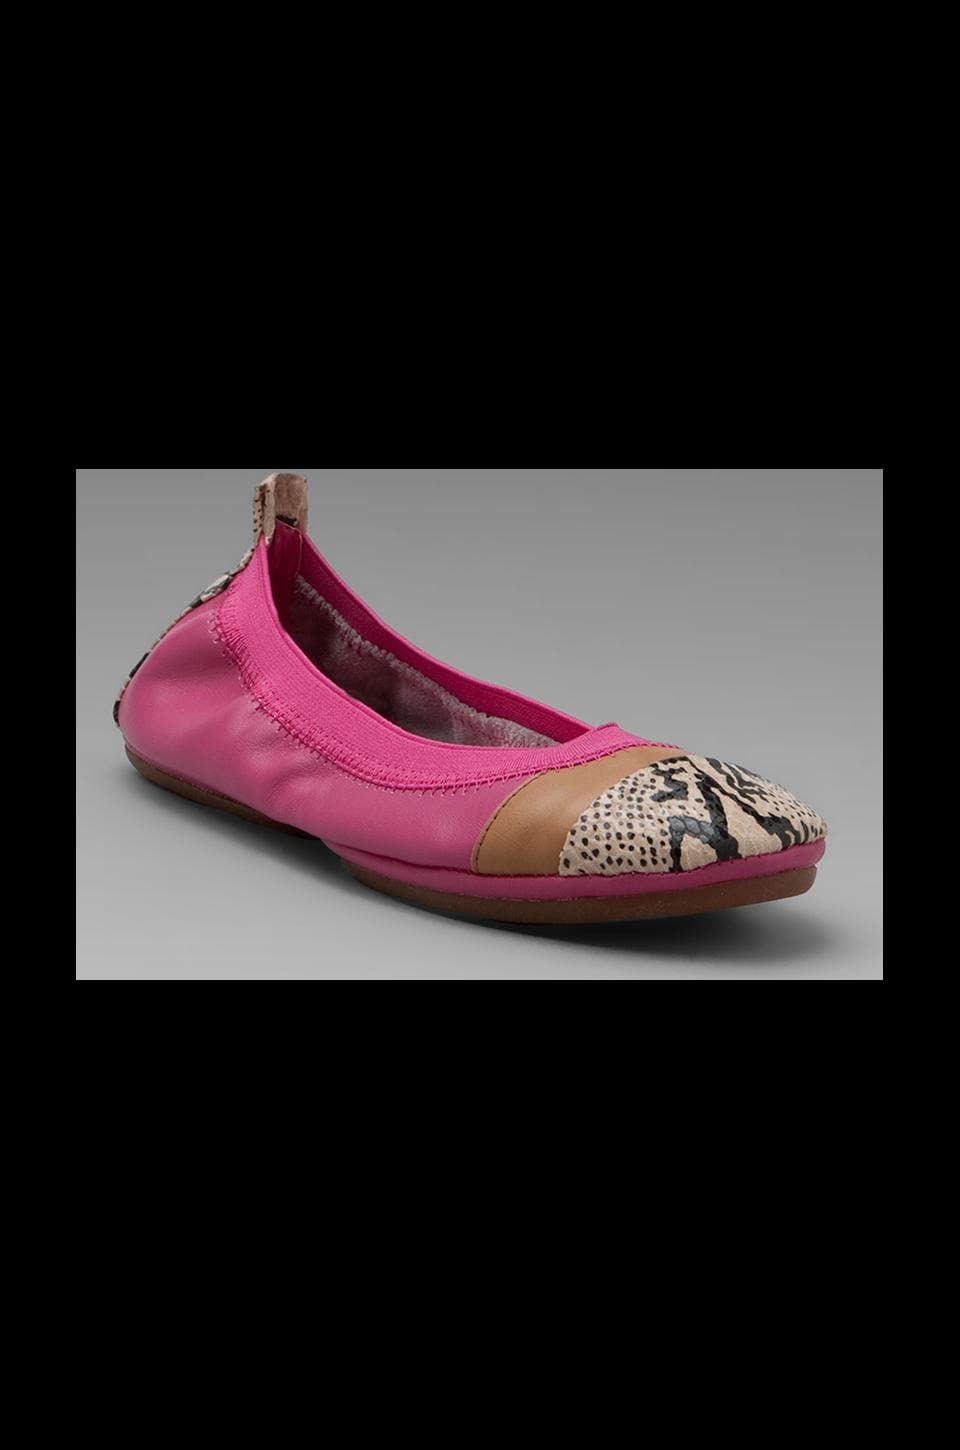 Yosi Samra Color Blocked Flat in Pink/Nude Snake